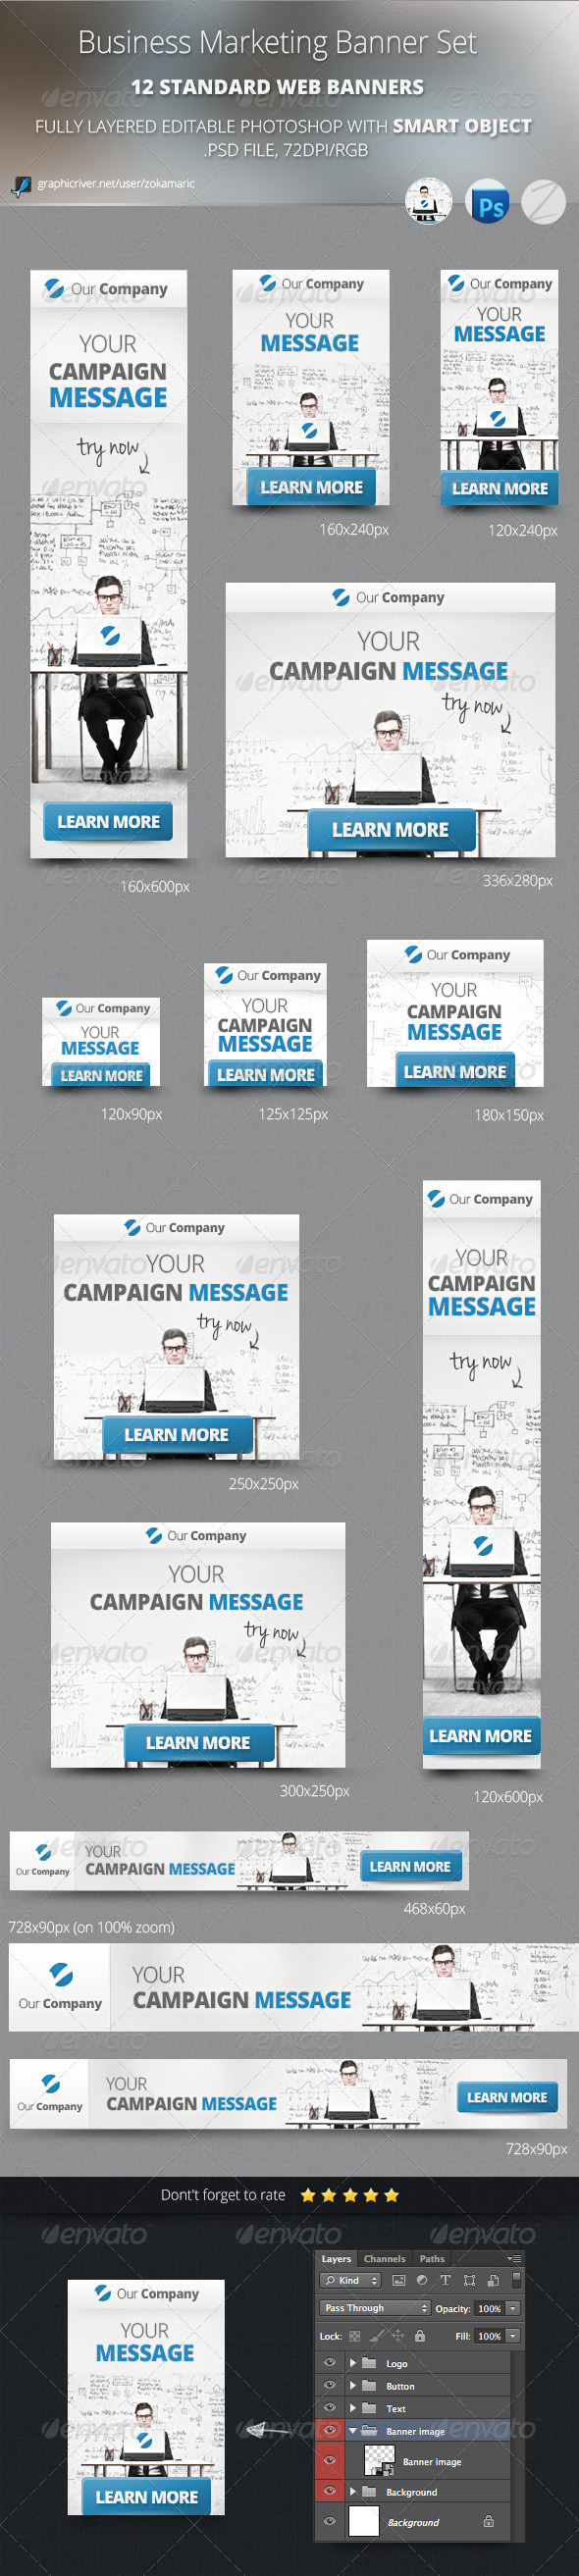 Business Marketing Banner Set - Banners & Ads Web Elements